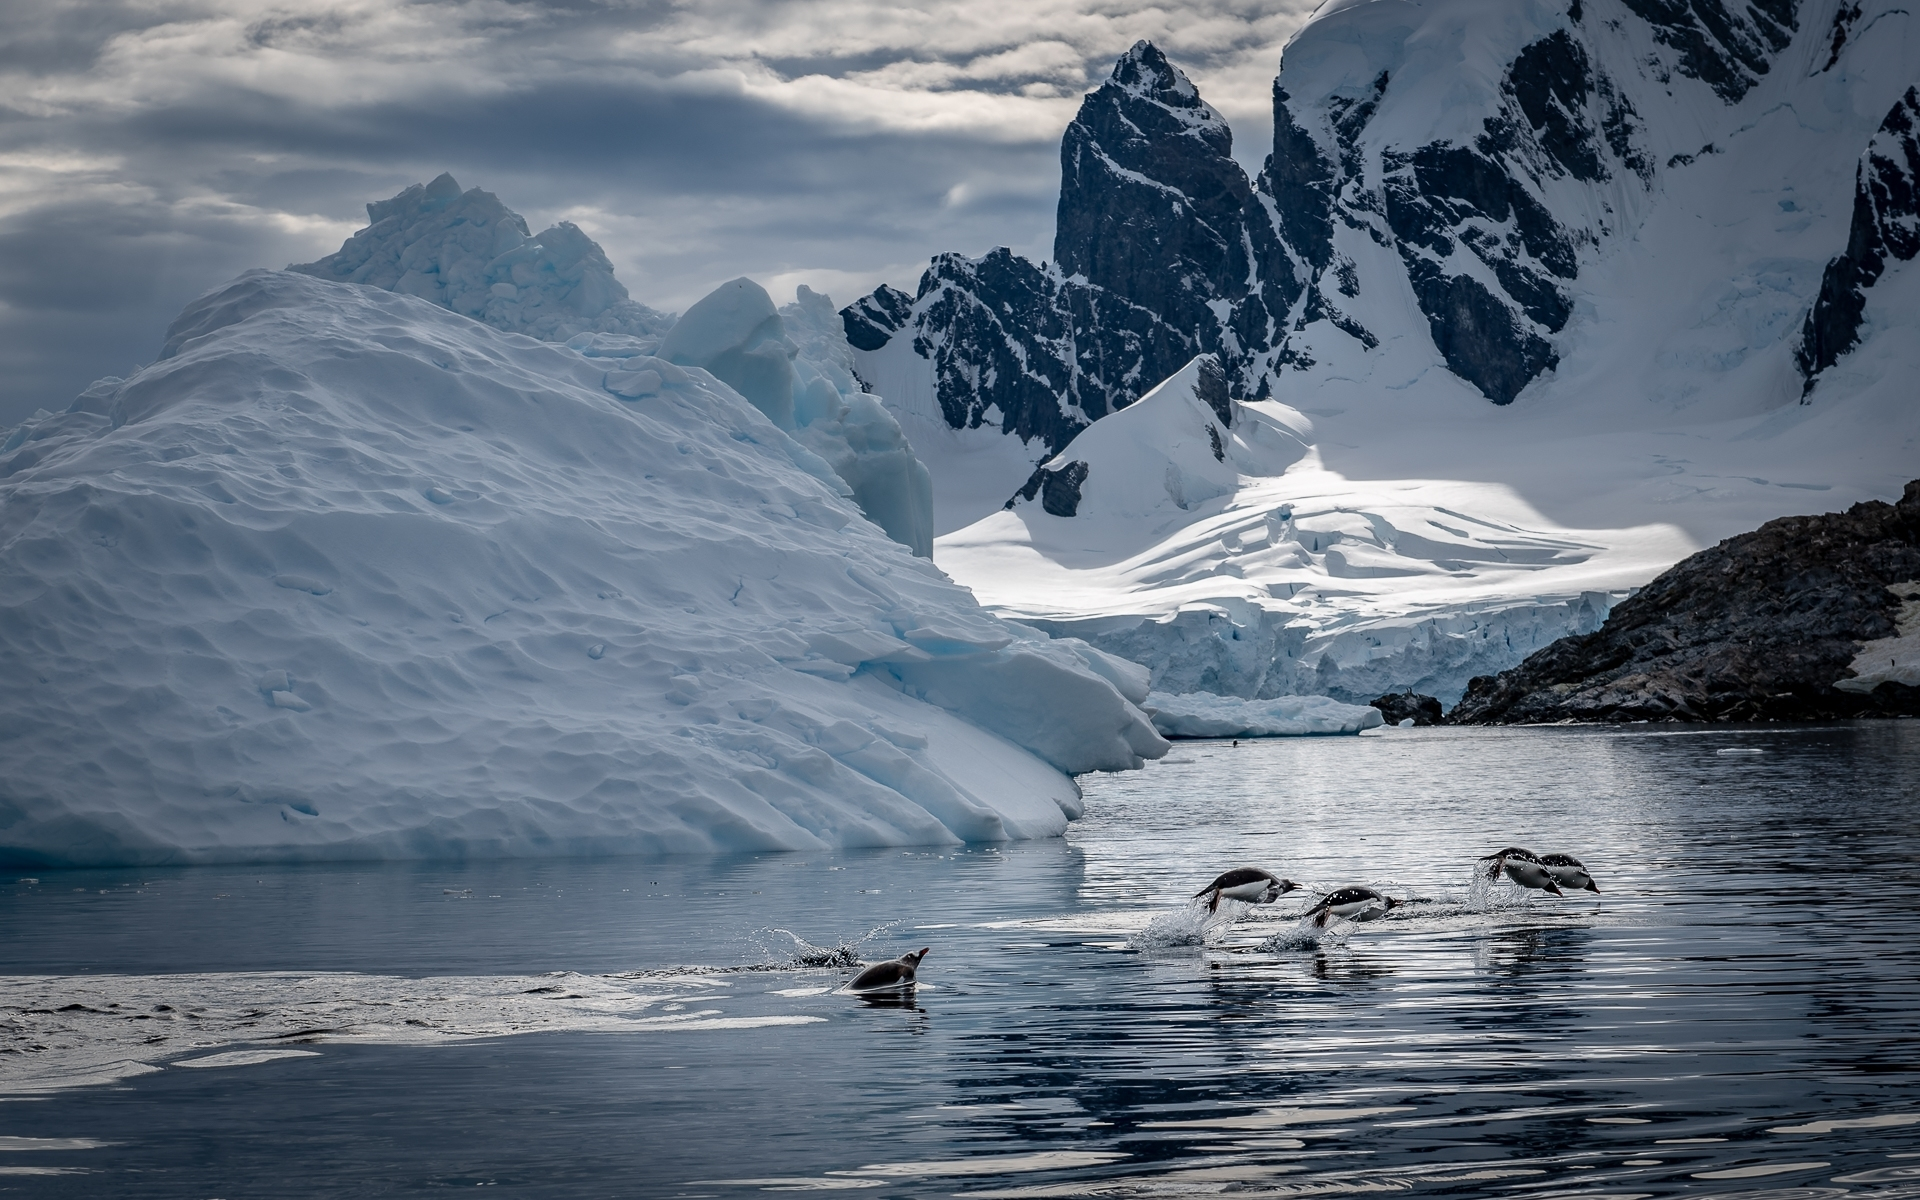 Gentoo-penguins-_porpoise_-by-jumping-out-of-the-water-to-escape-from-a-predator-Antarctica-NB-1-Place-by-Tim-Cuneo-SC